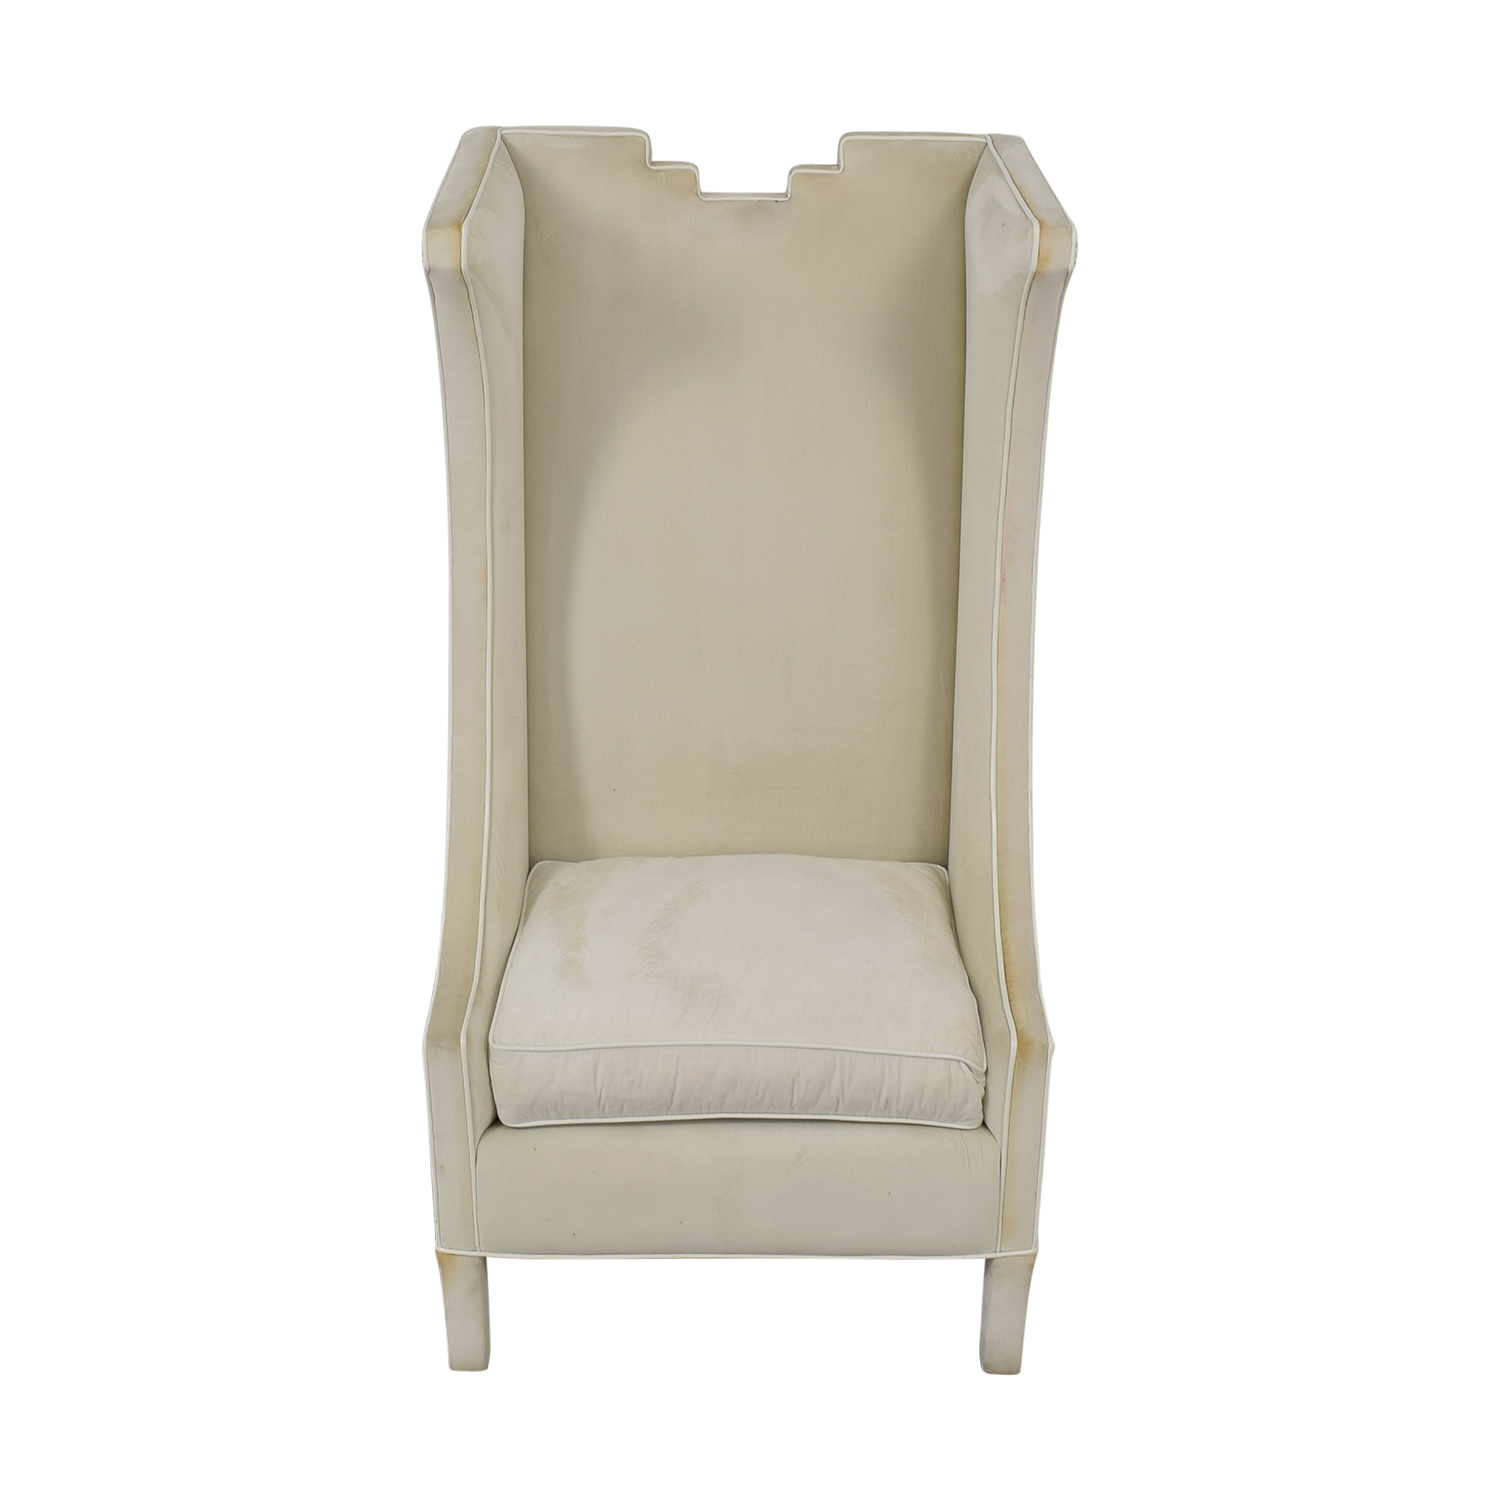 Shine by S.H.O Shine by S.H.O. Lolita High Chair Cotton Velvet and Leather Piping Accent Chairs